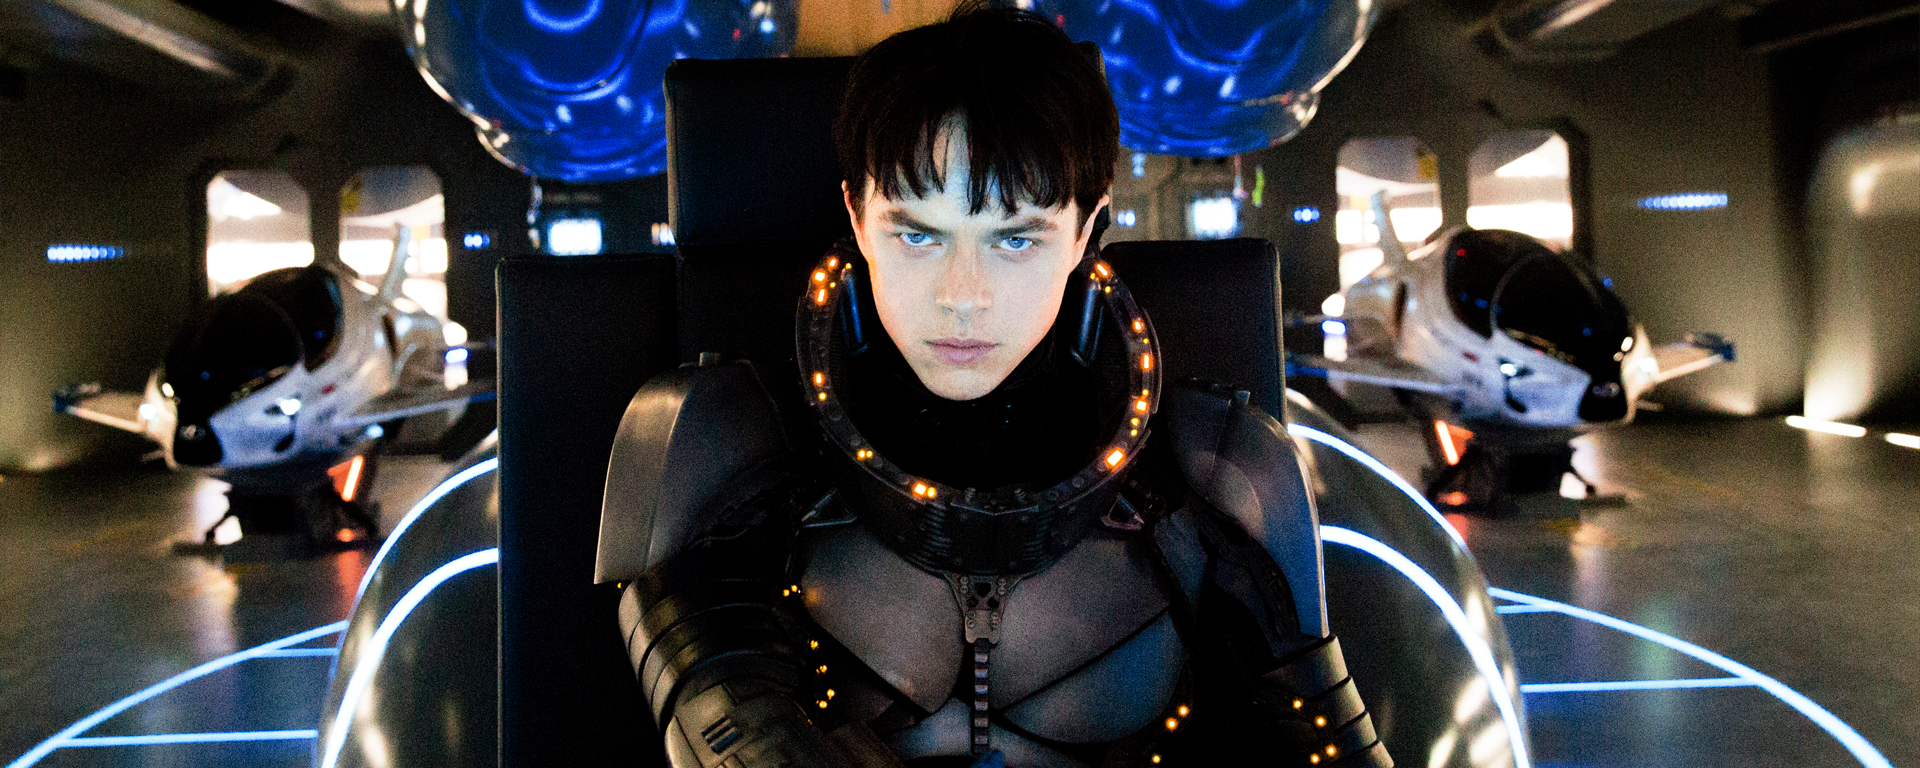 <em>Valerian and the City of a Thousand Planets</em>